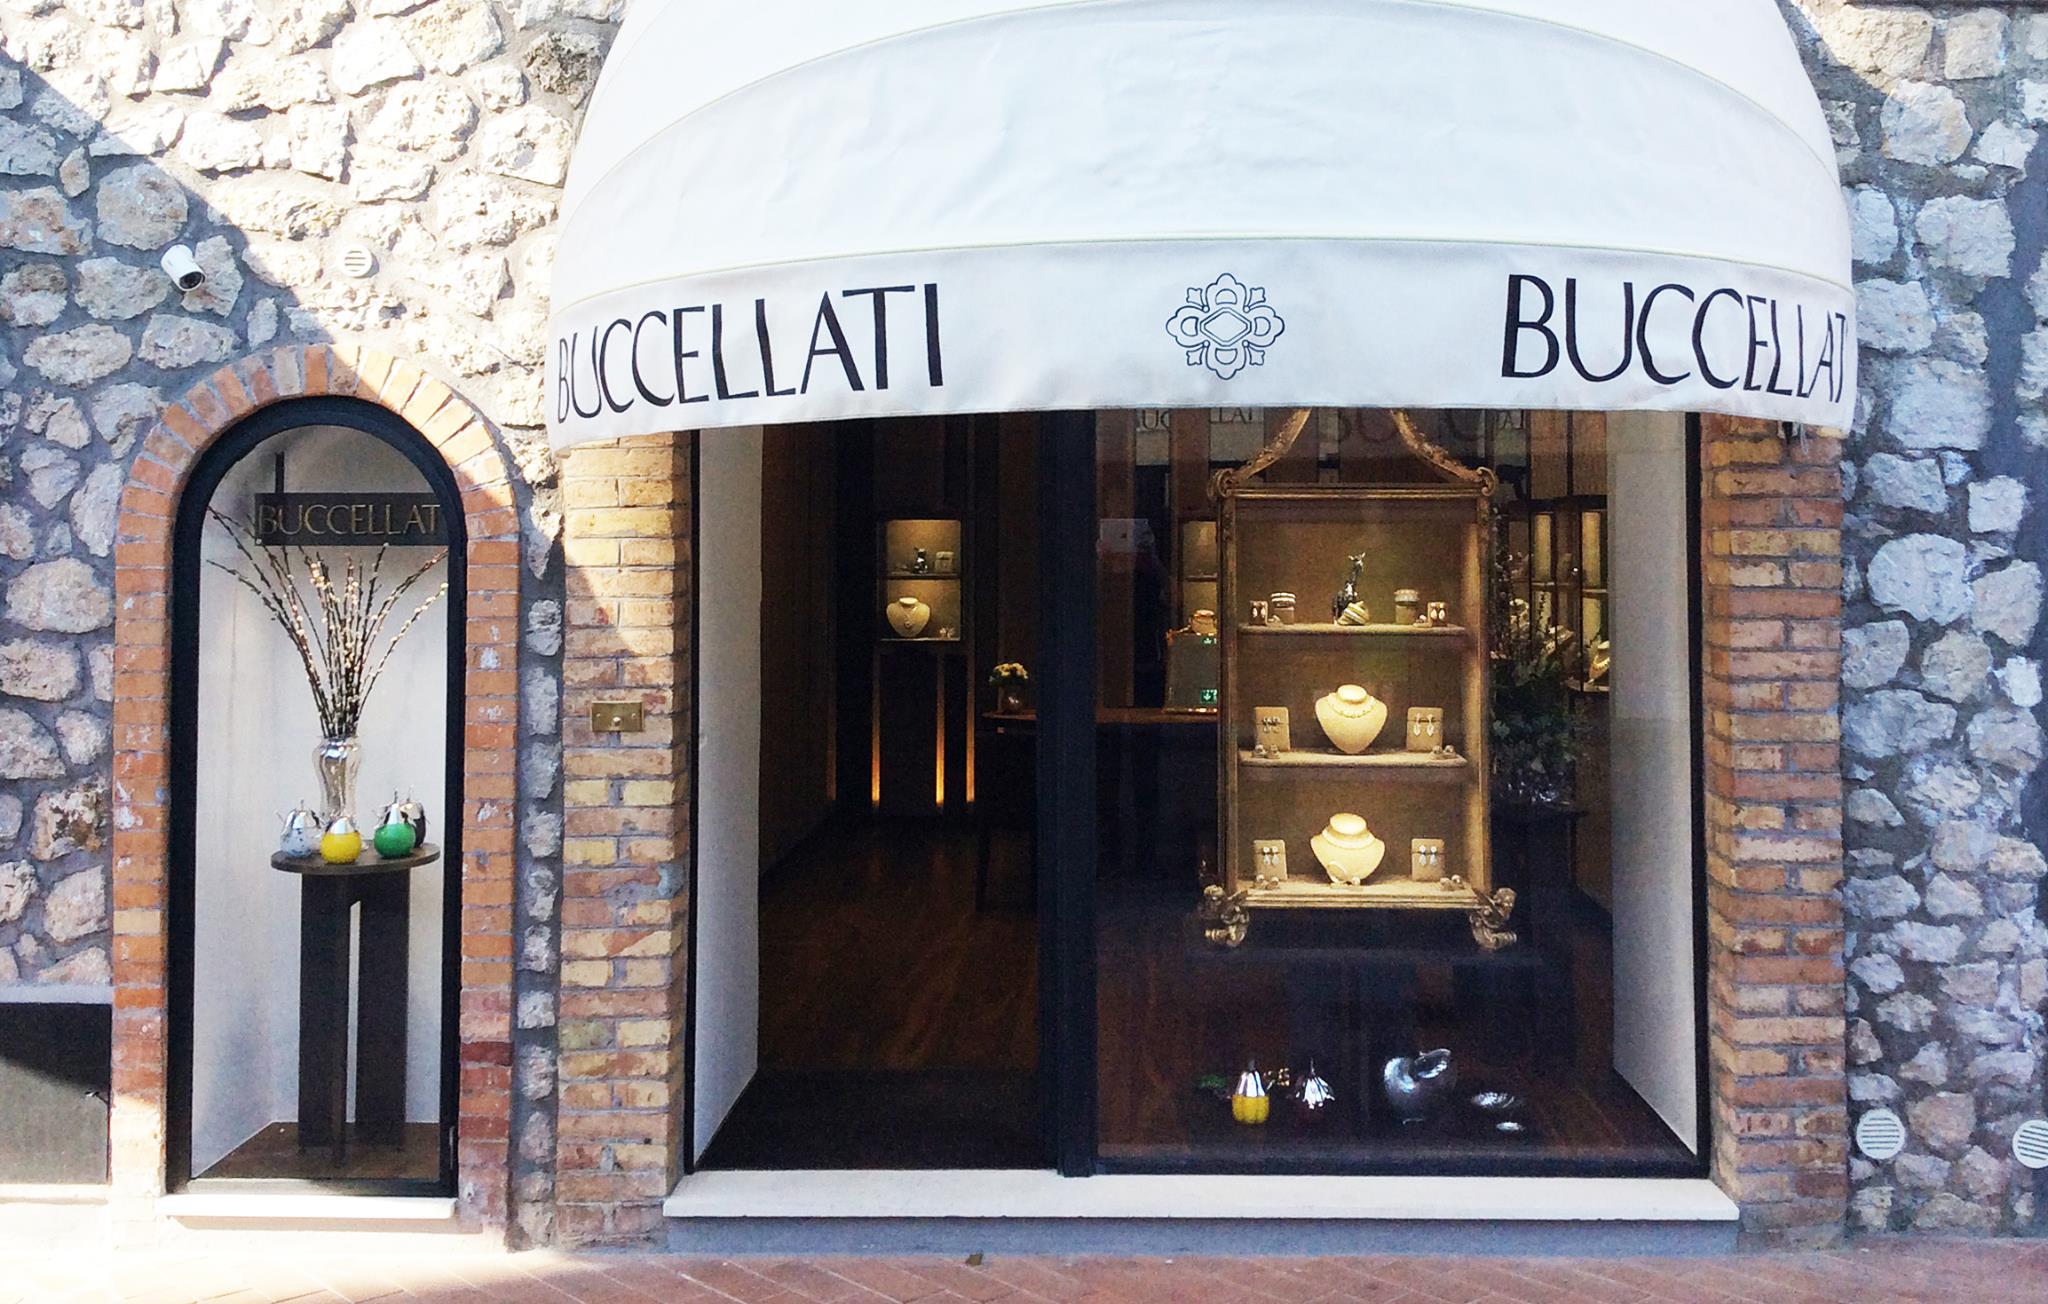 Buccellati store front design and window display for jewelry display ideas.